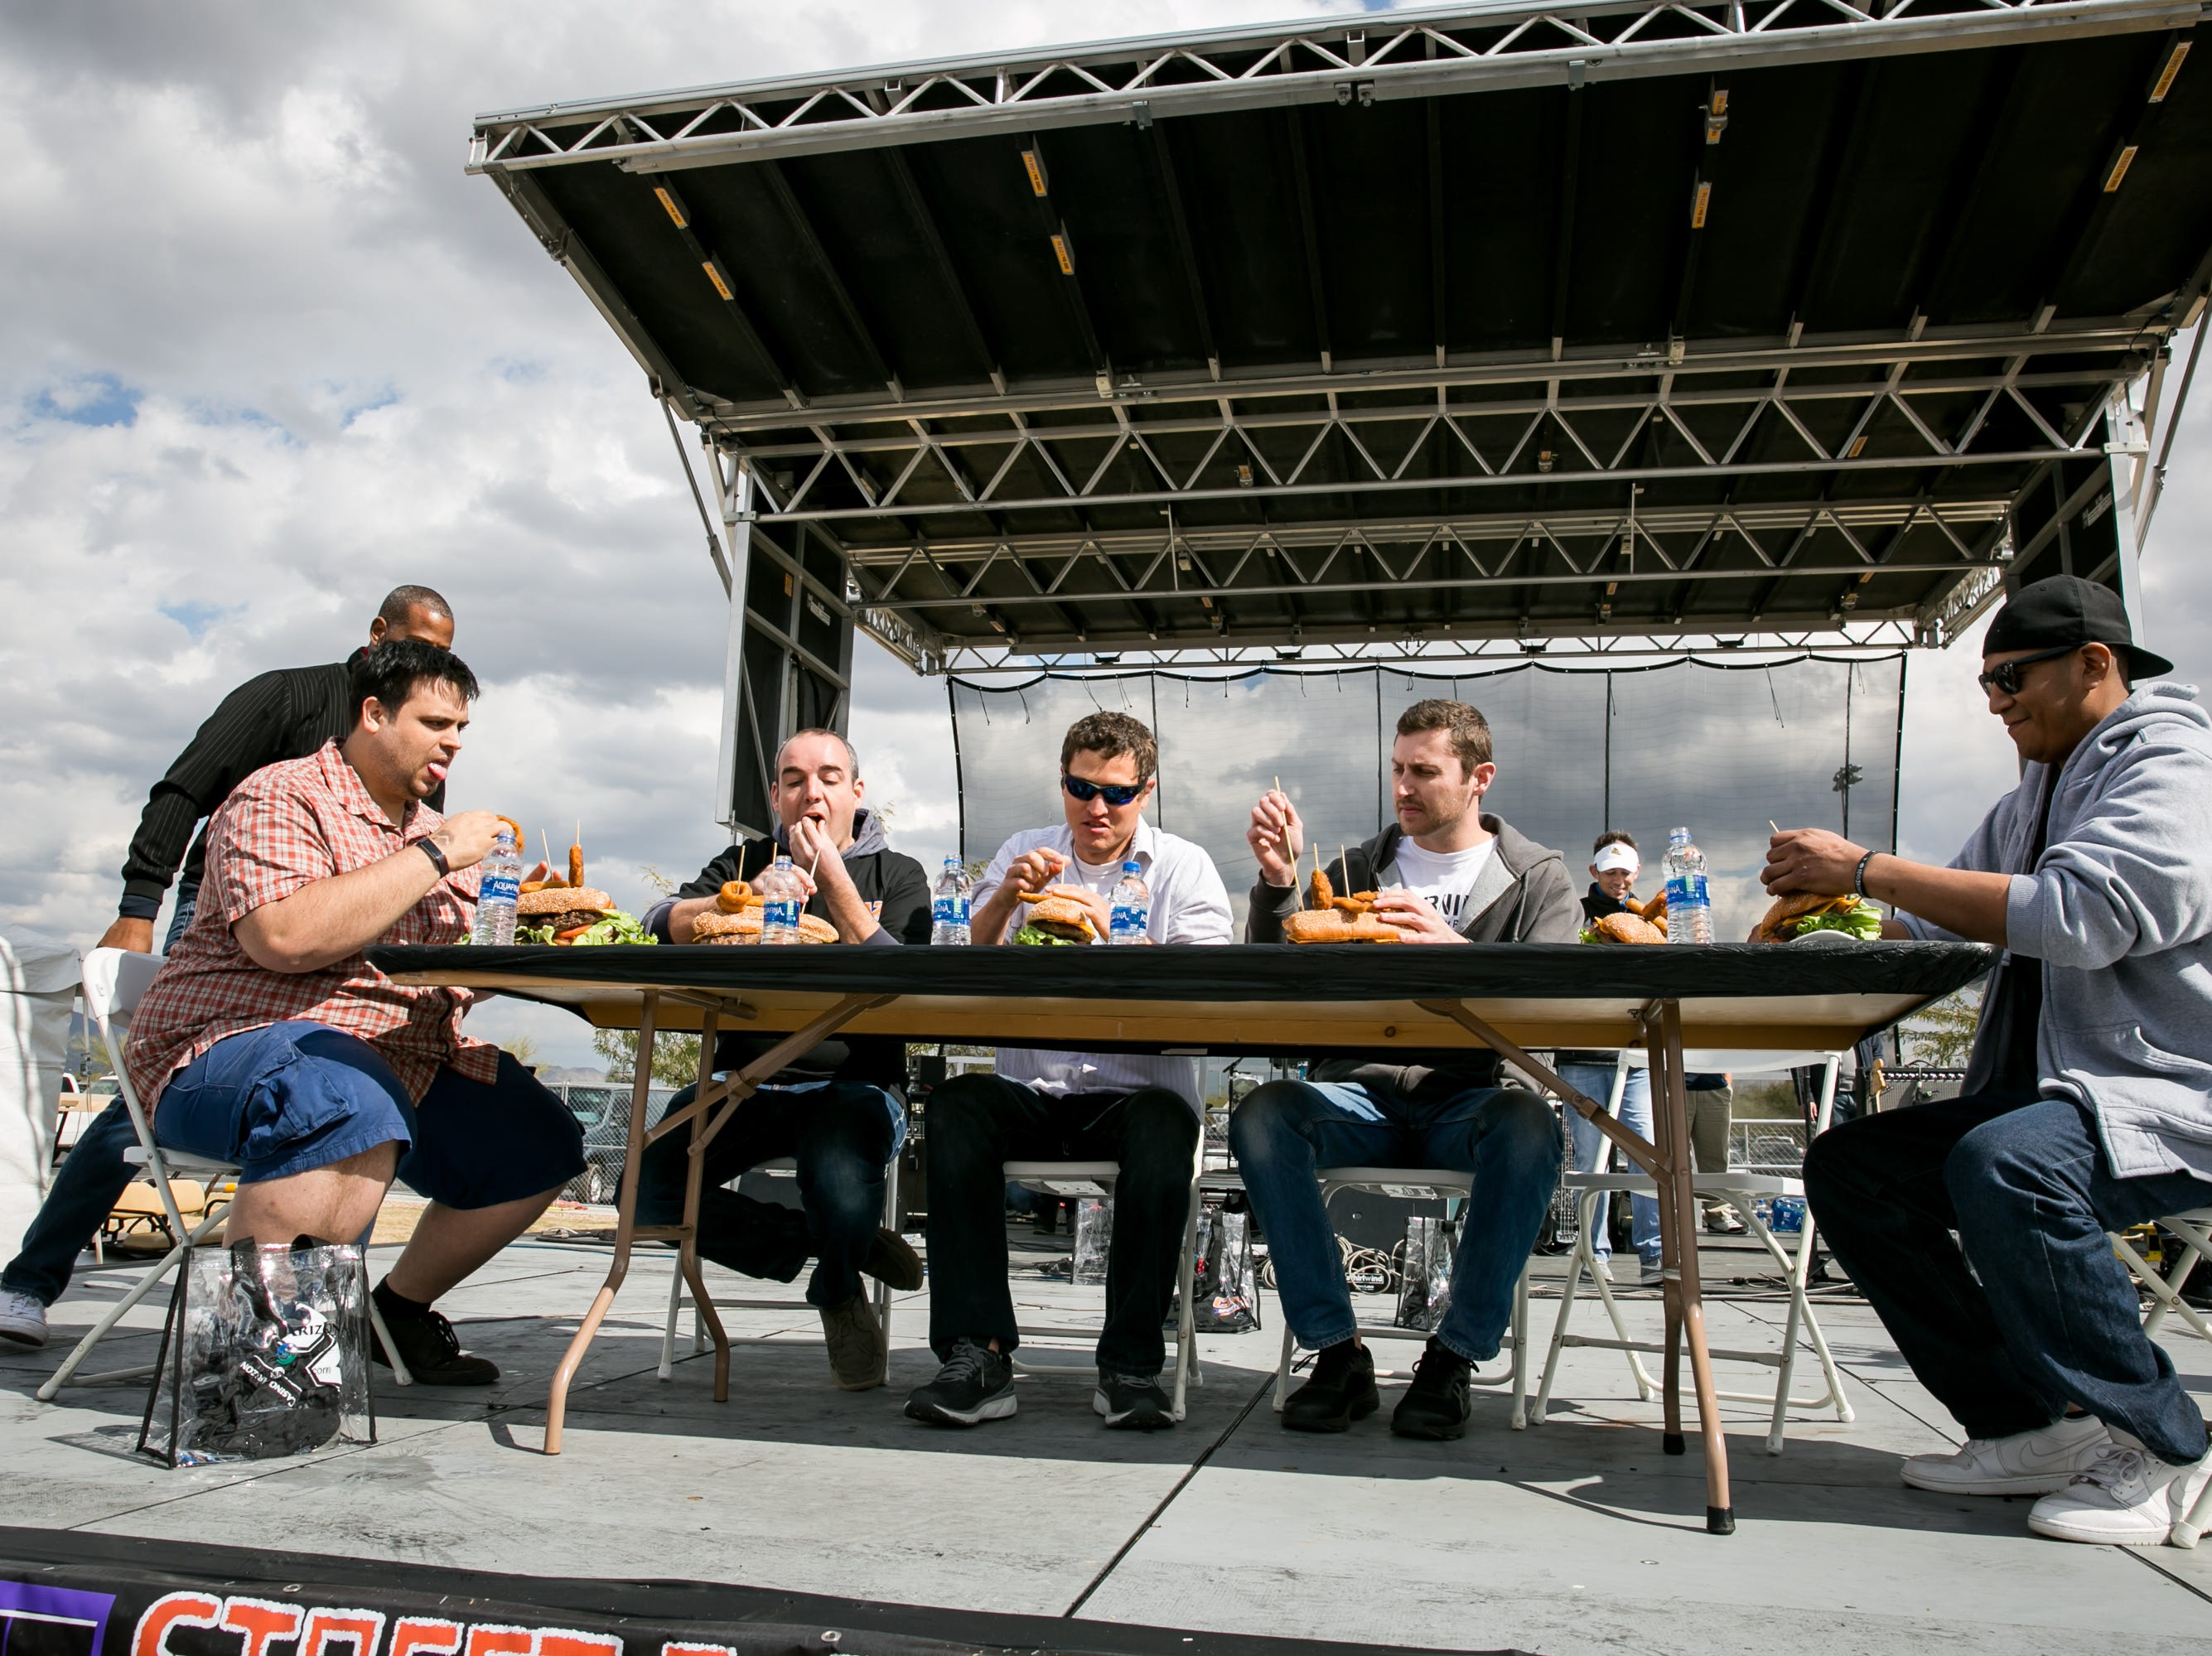 The eating contest got heated during the Street Eats Food Truck Festival at Salt River Fields near Scottsdale on Feb. 17, 2019.